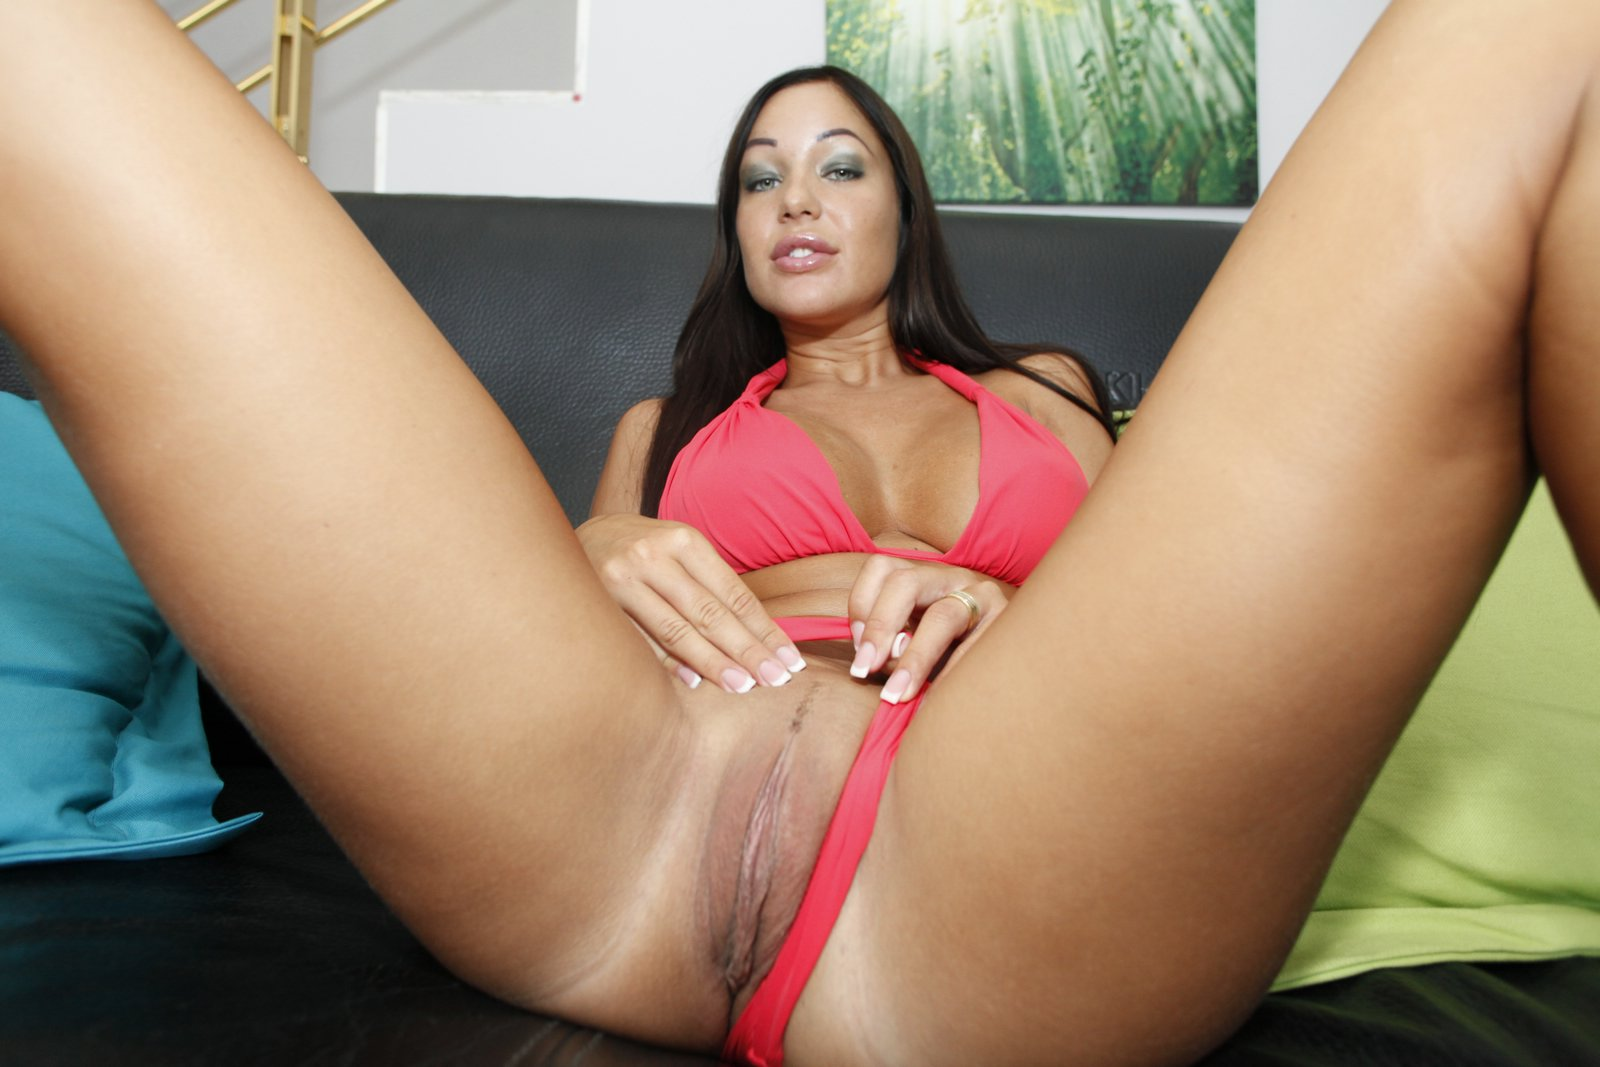 Blowjob cum in my mouth alexis monroe 6